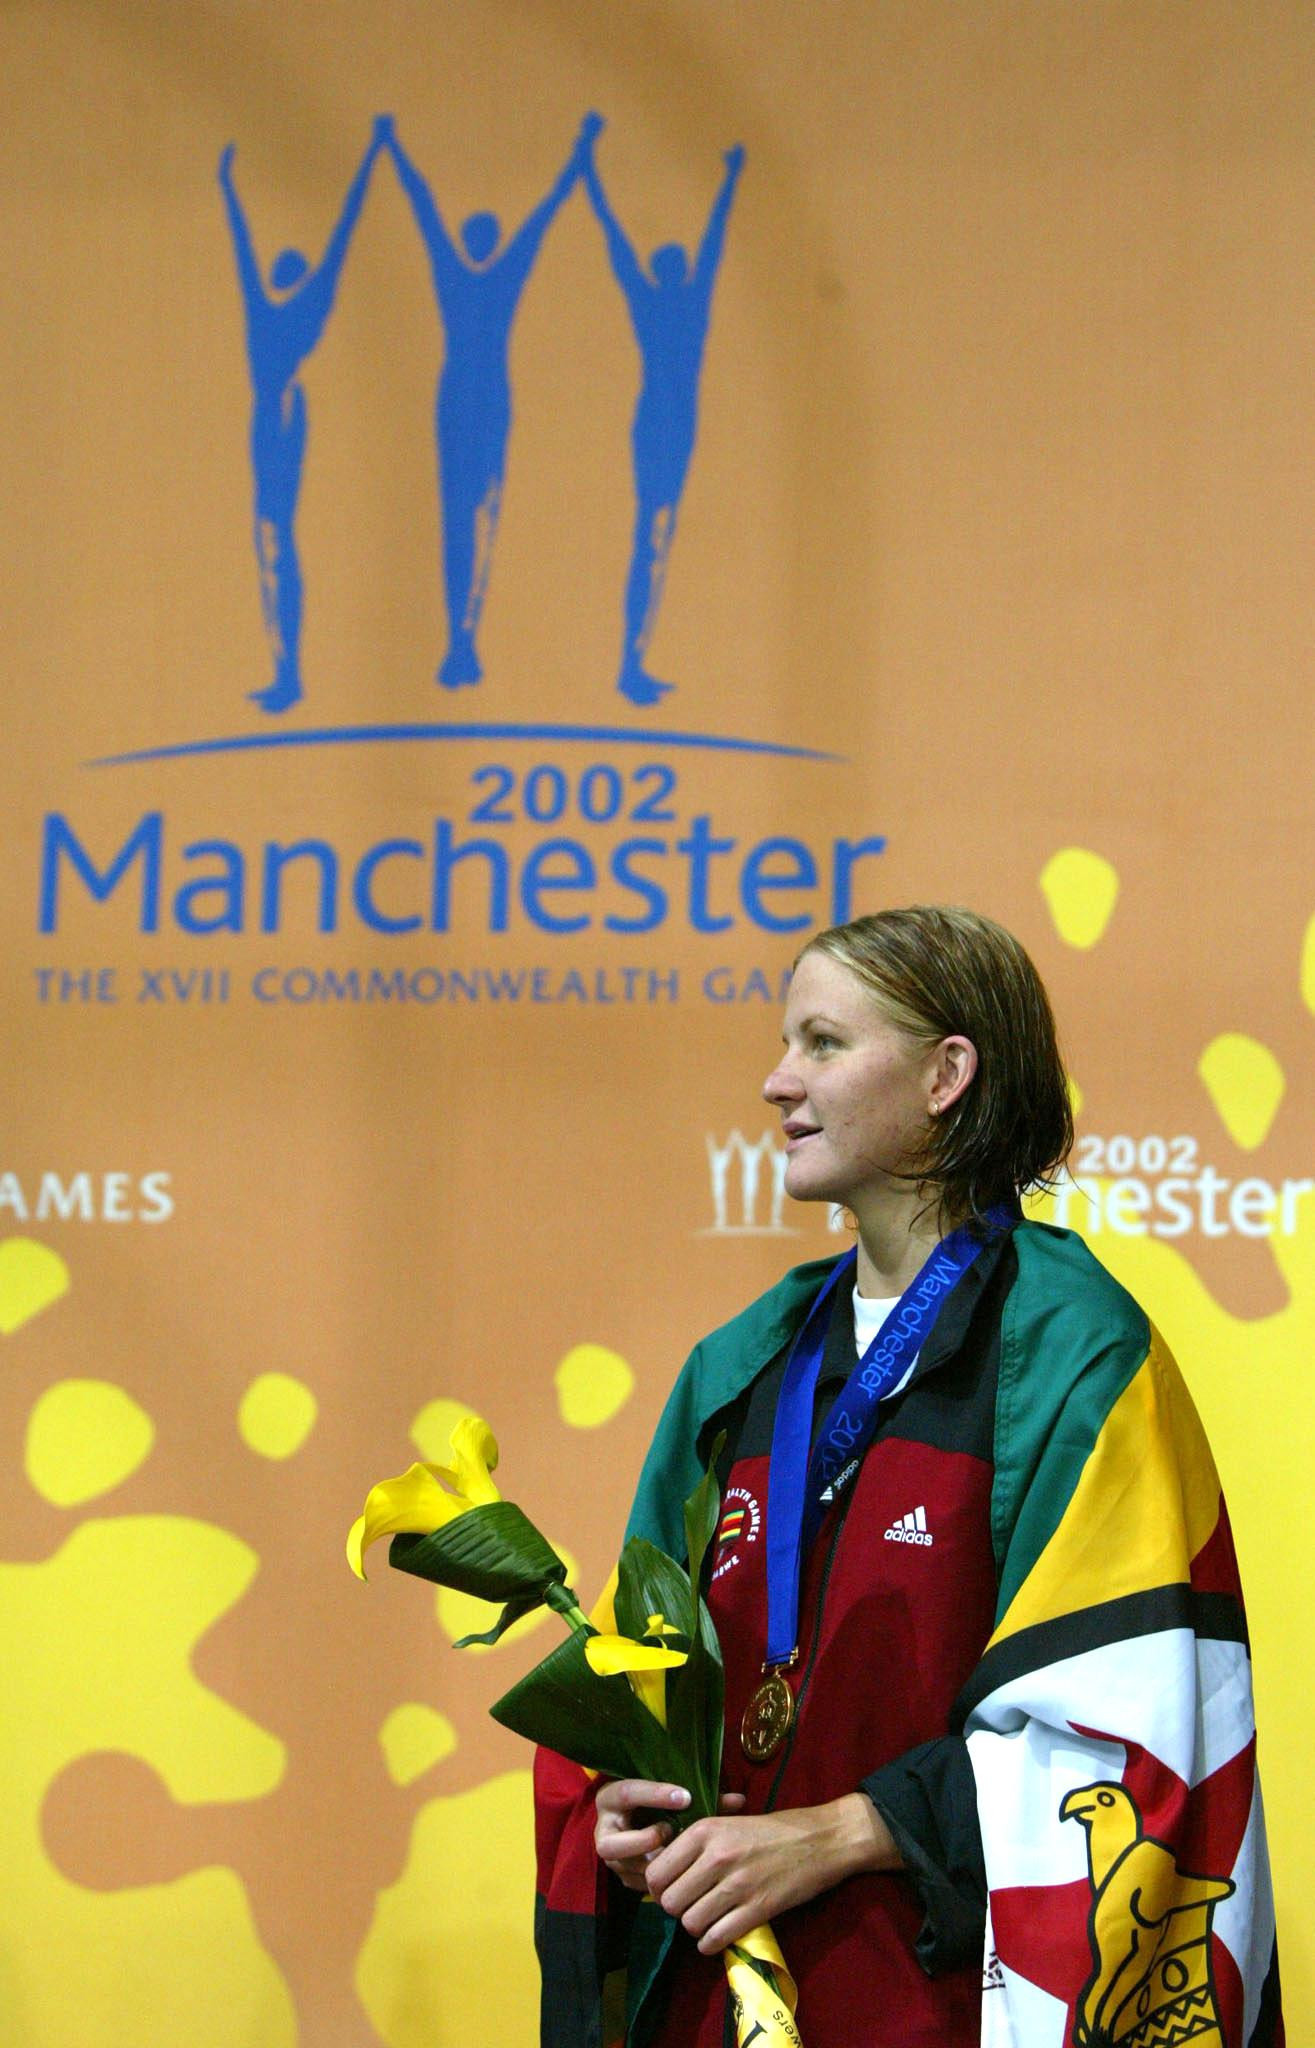 Kirsty Coventry won Zimbabwe's last Commonwealth Games gold medal at Manchester 2002 before the country's membership of the Commonwealth was suspended ©Getty Images